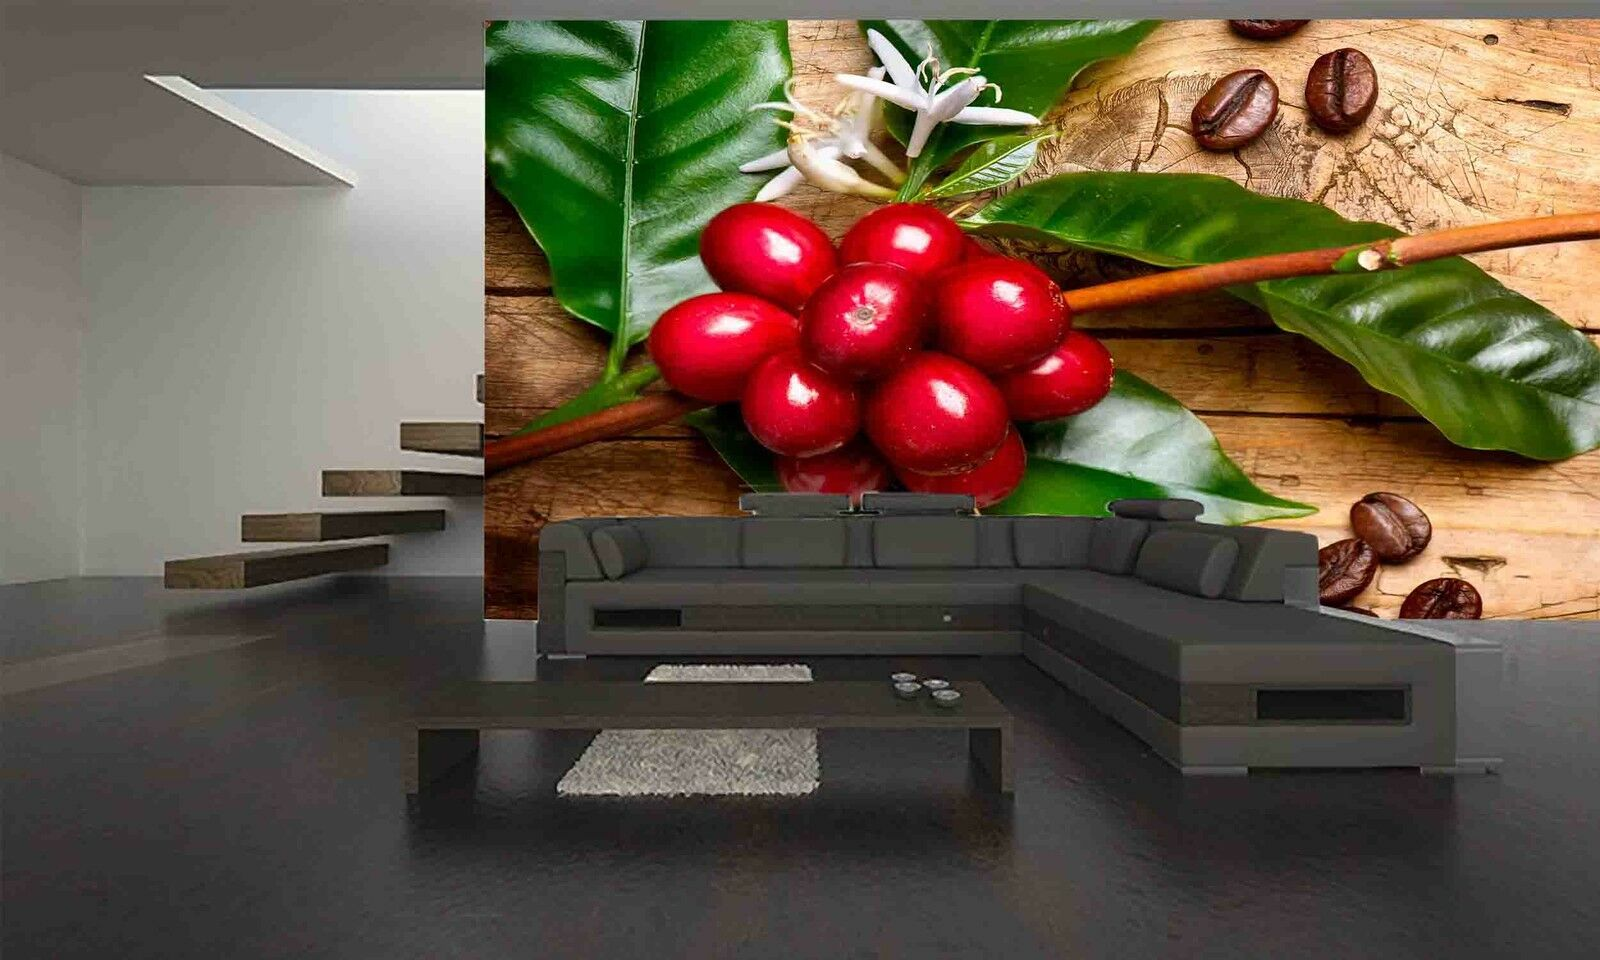 ROT Coffee Beans GIANT WALL DECOR PAPER POSTER FOR BEDROOM